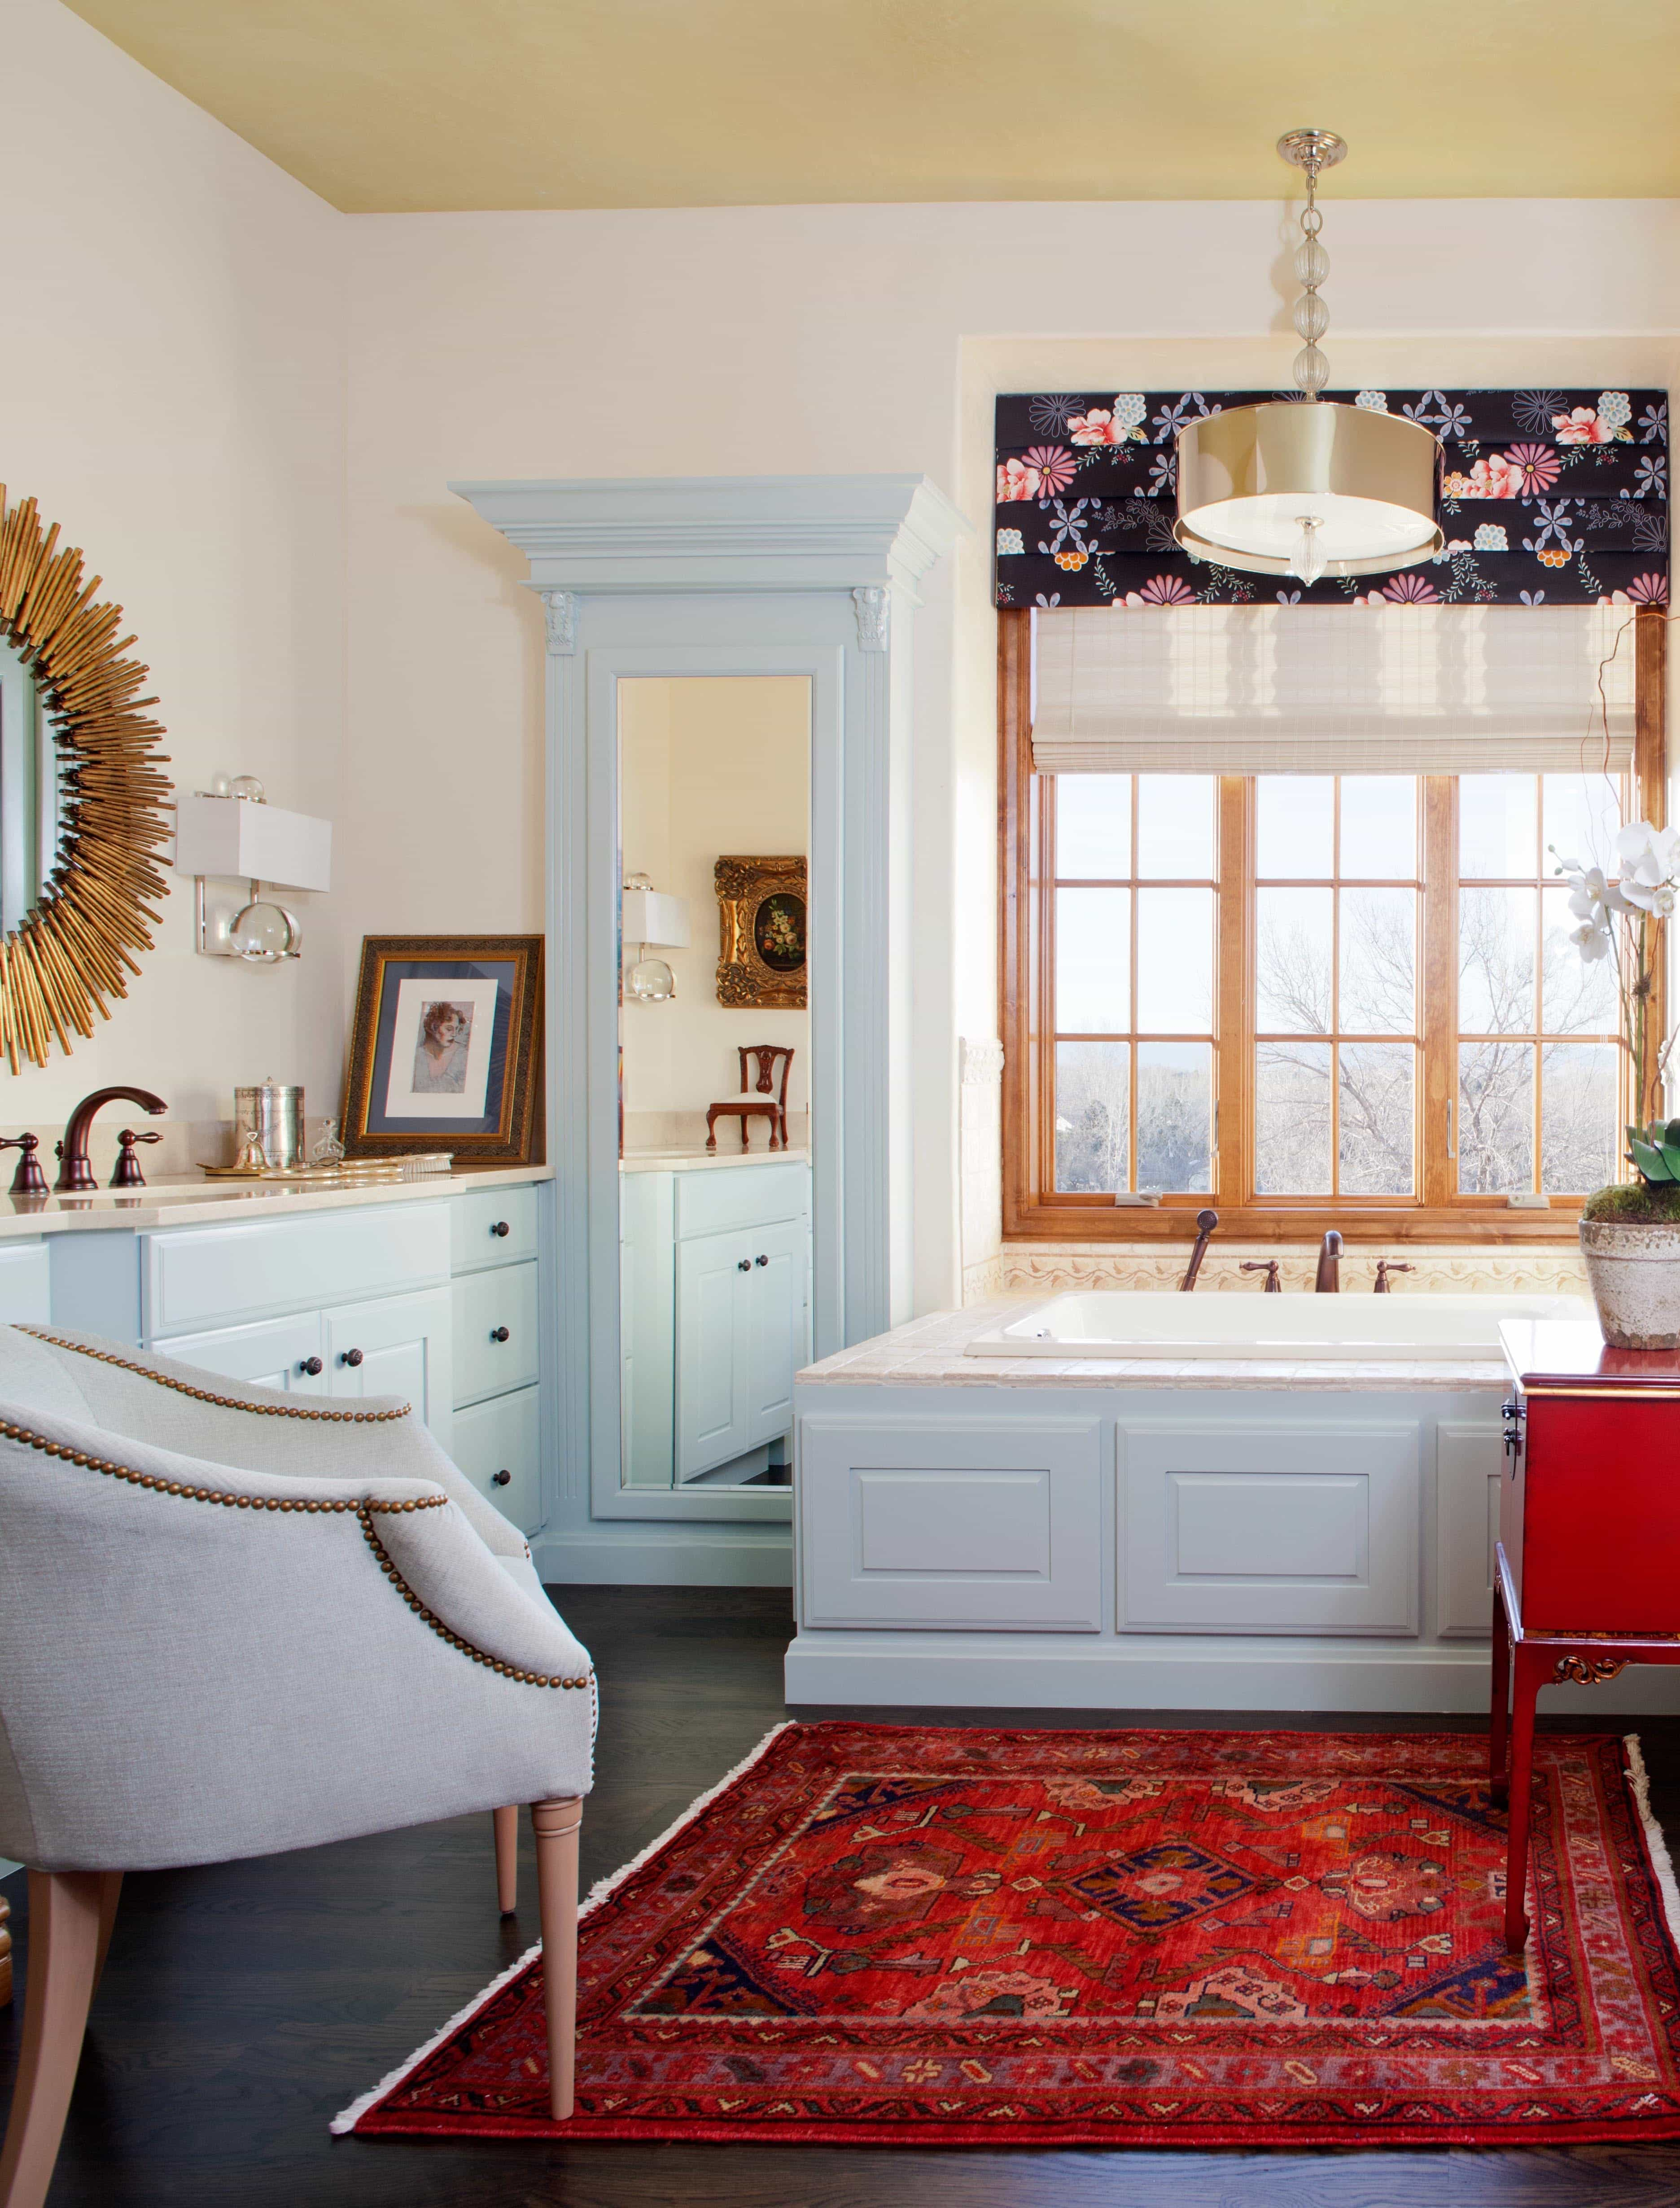 Country Rug Design For Traditional Bathroom Interior Design (Photo 10 of 11)